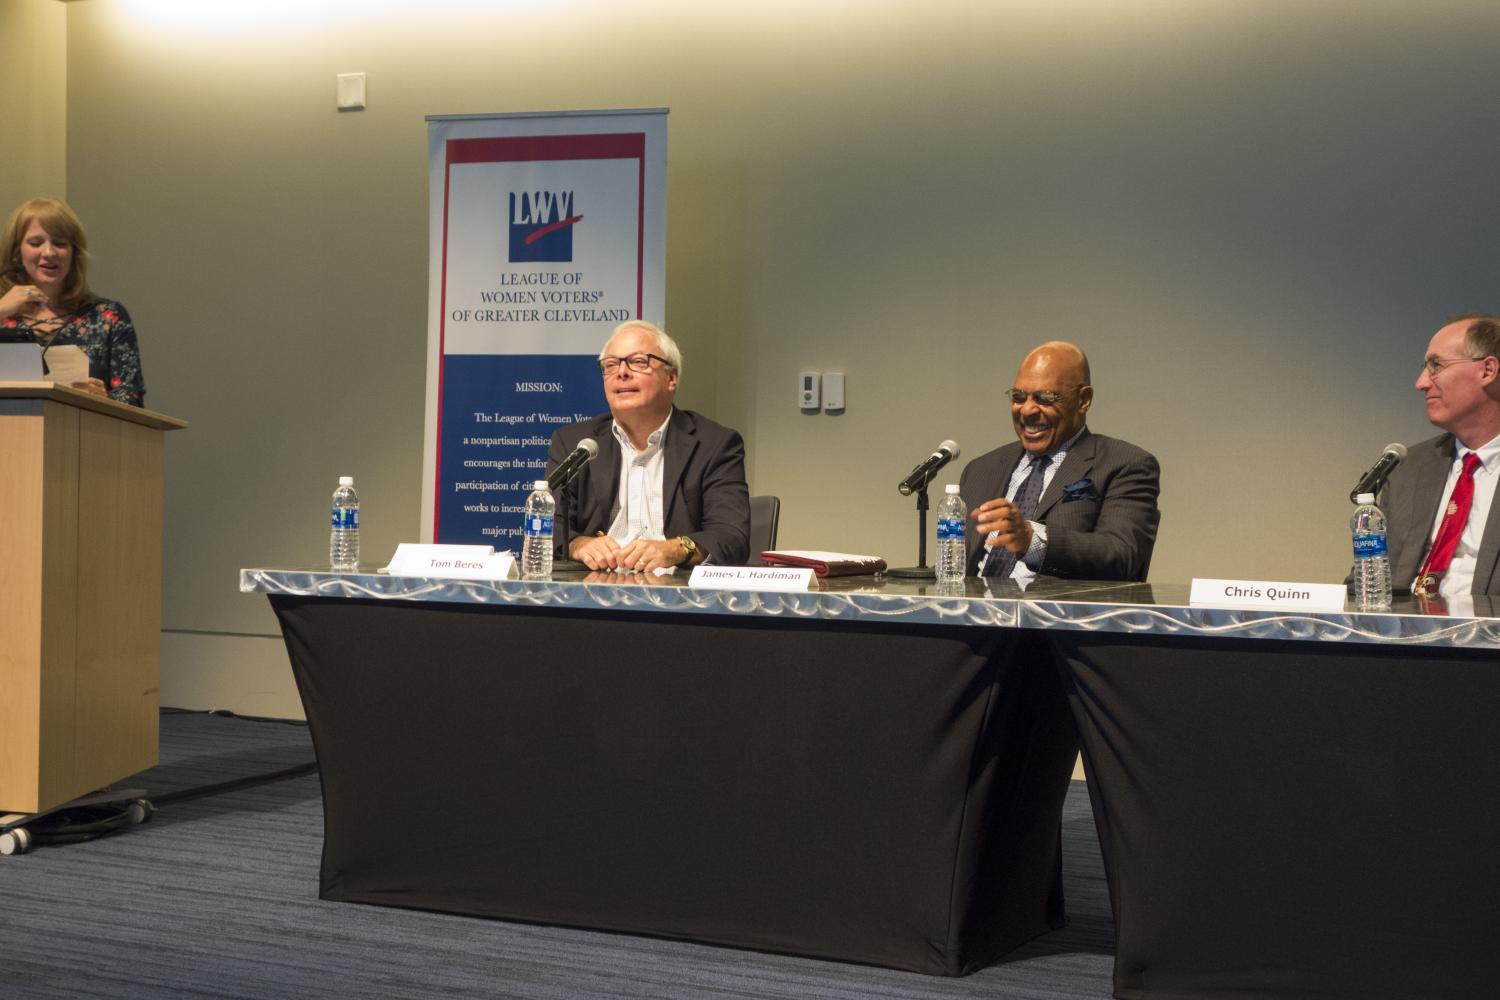 Panelists visited CWRU to participate in a forum sponsored by the Siegal Learning Center. They discussed the future of Cleveland and the mayoral elections.